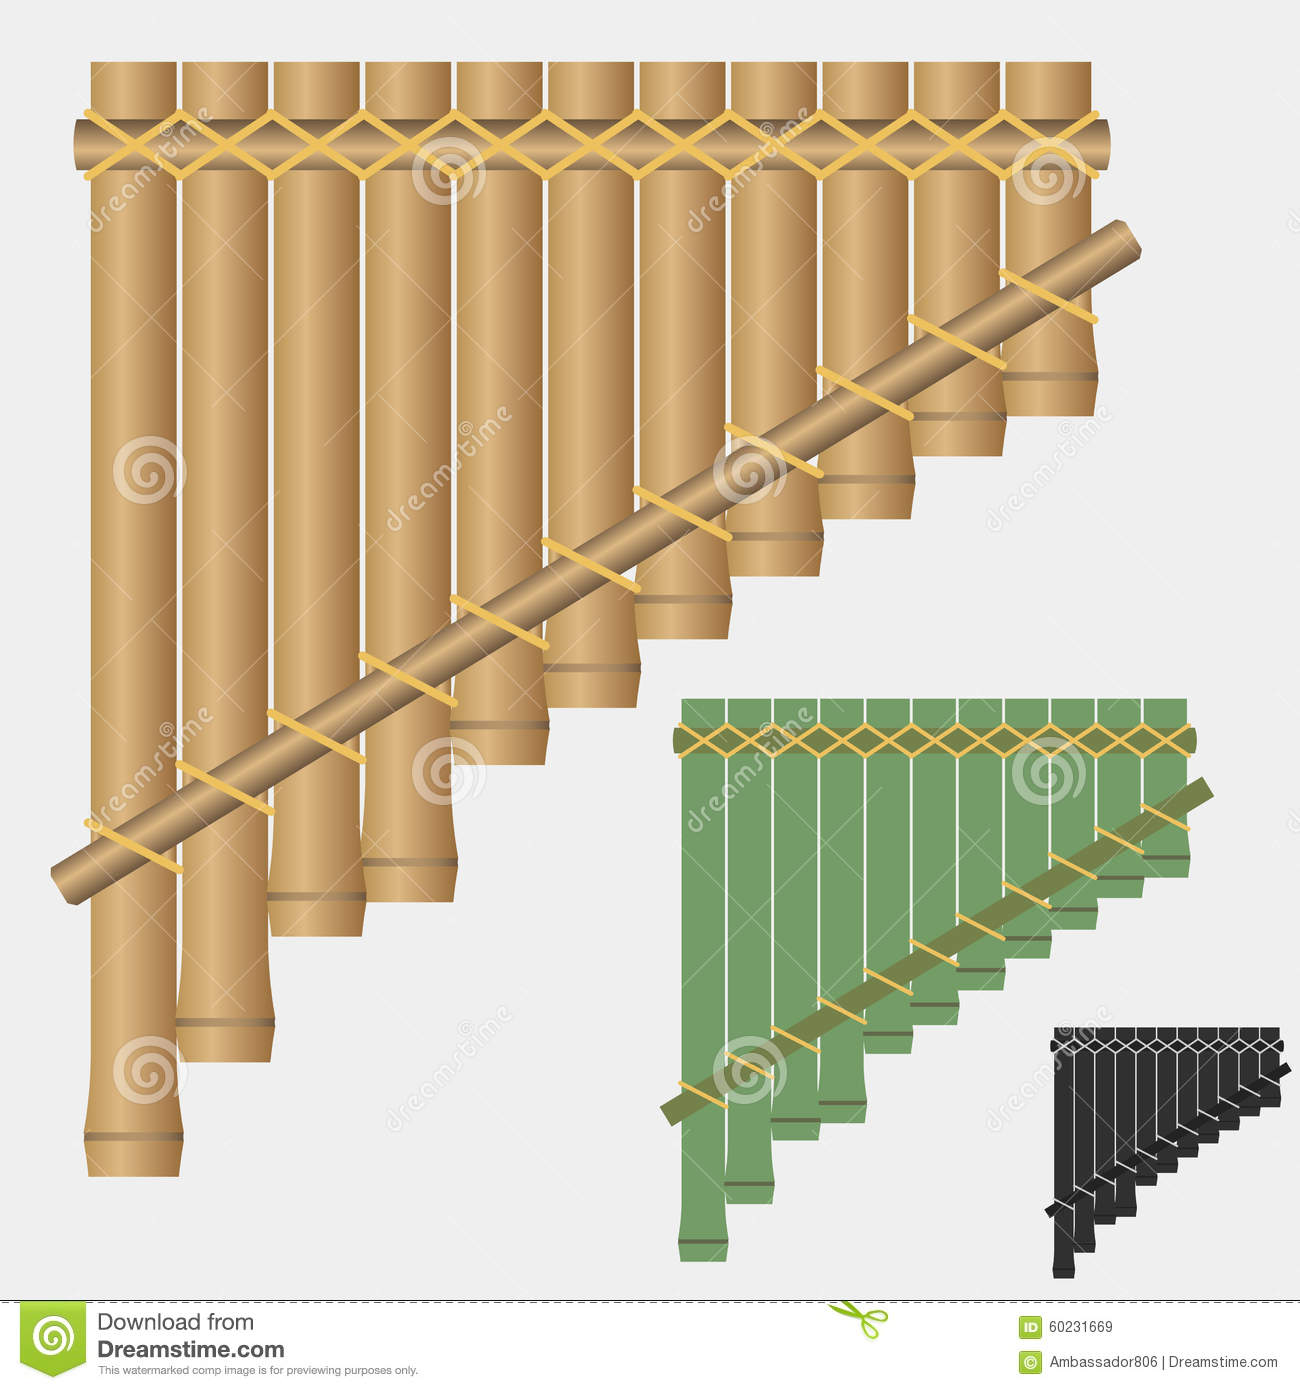 Pan flute, bamboo flute, pan pipes, wind musical instrument - vectors.